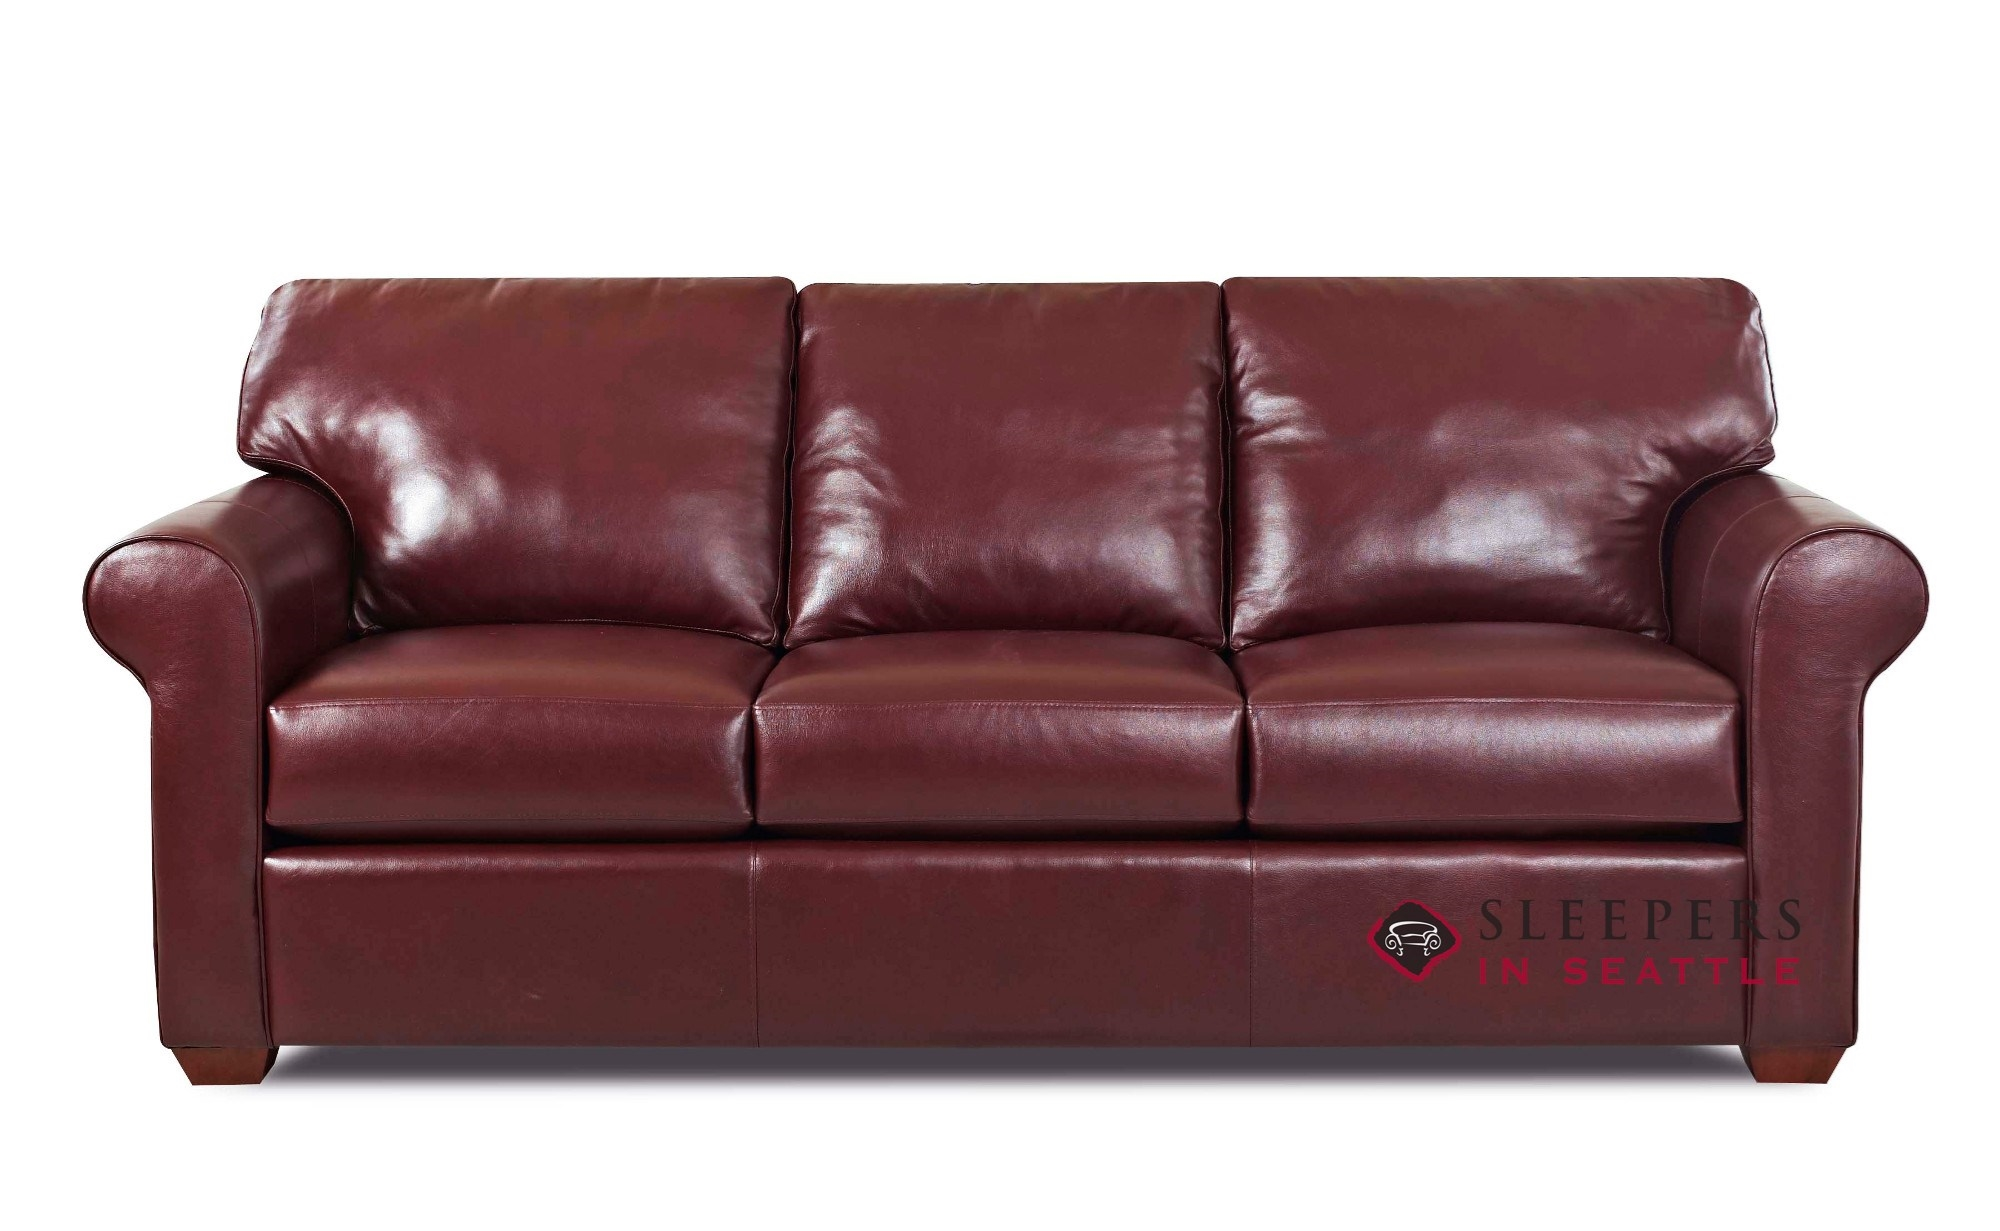 Savvy Cancun Leather Queen Sleeper Sofa